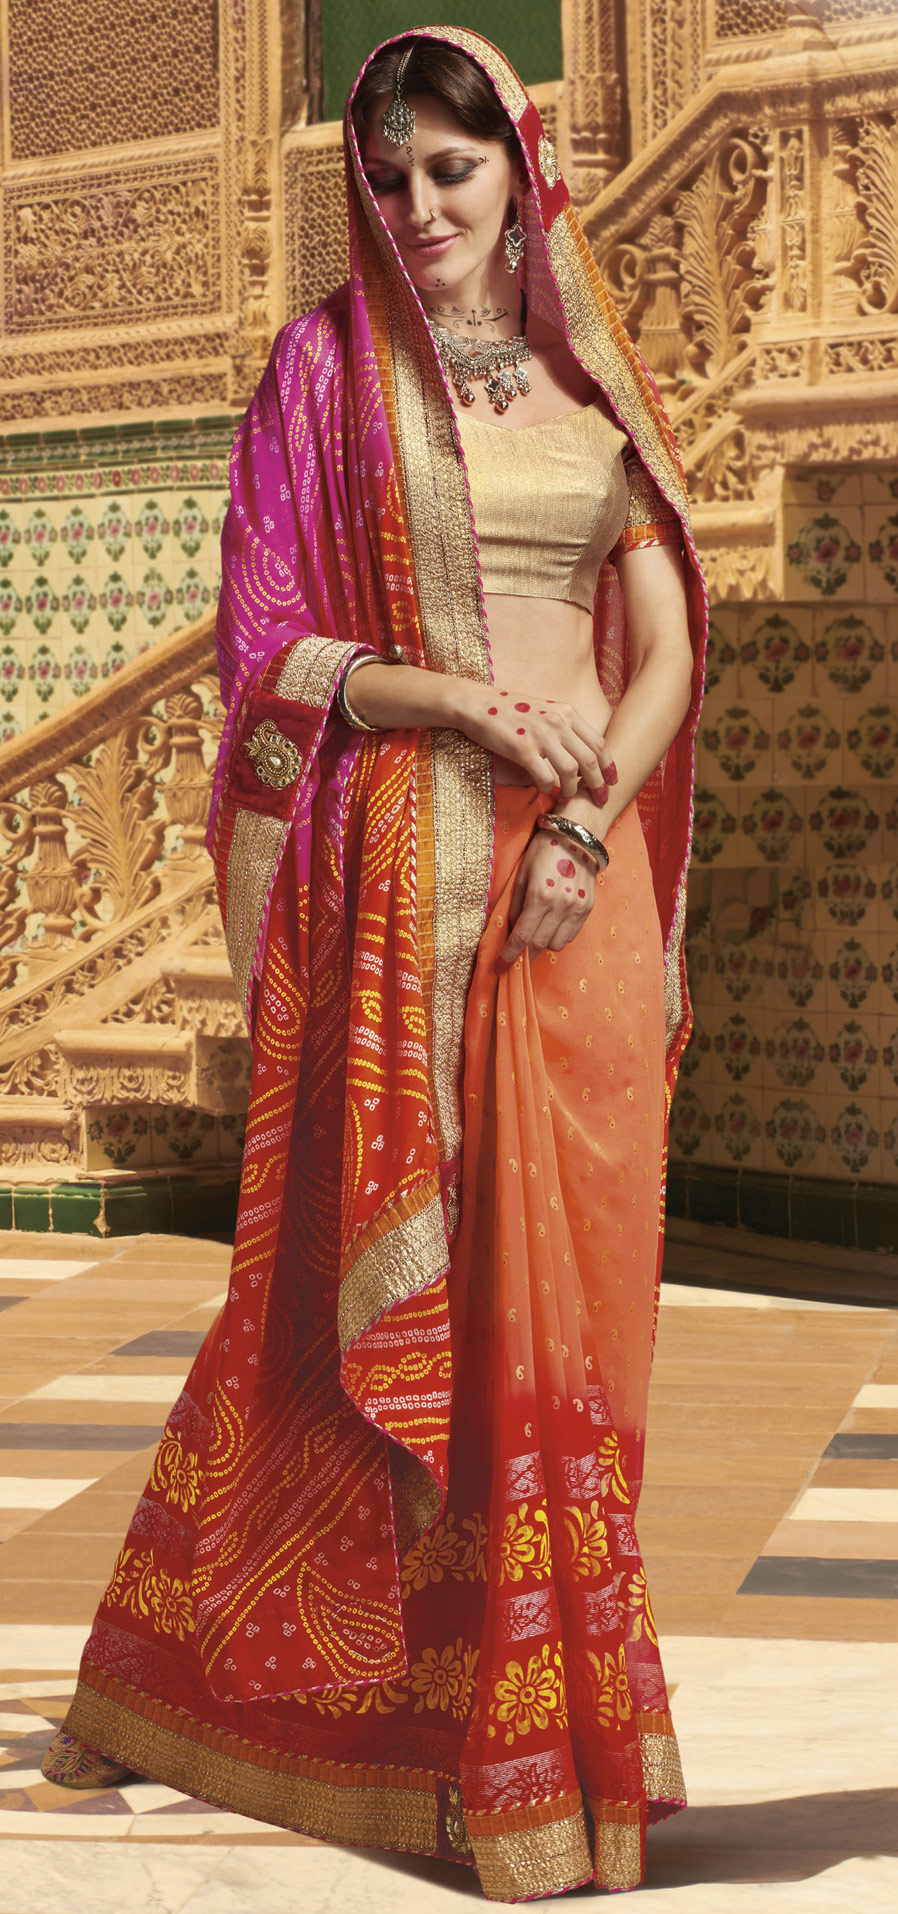 Peach - Orange Bandhani Print Saree